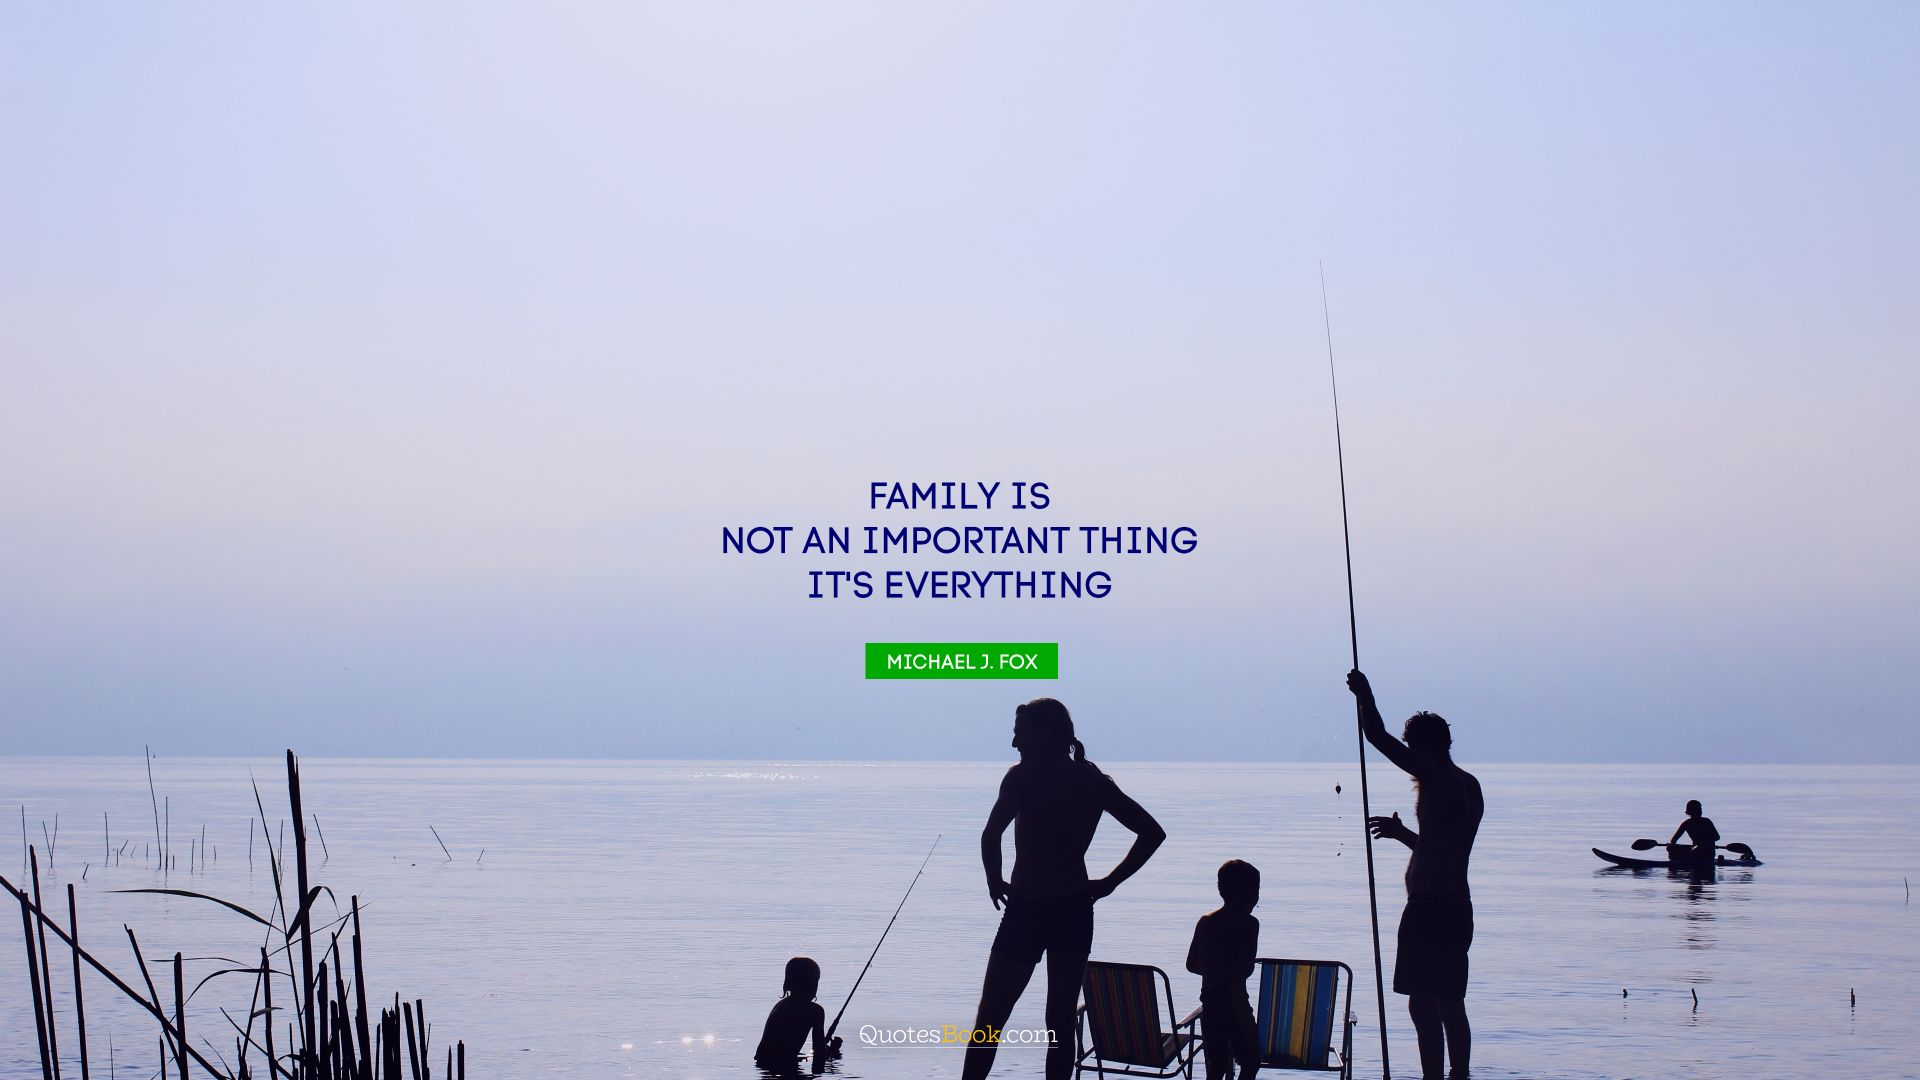 Family is not an important thing. It's everything. - Quote by Michael J. Fox